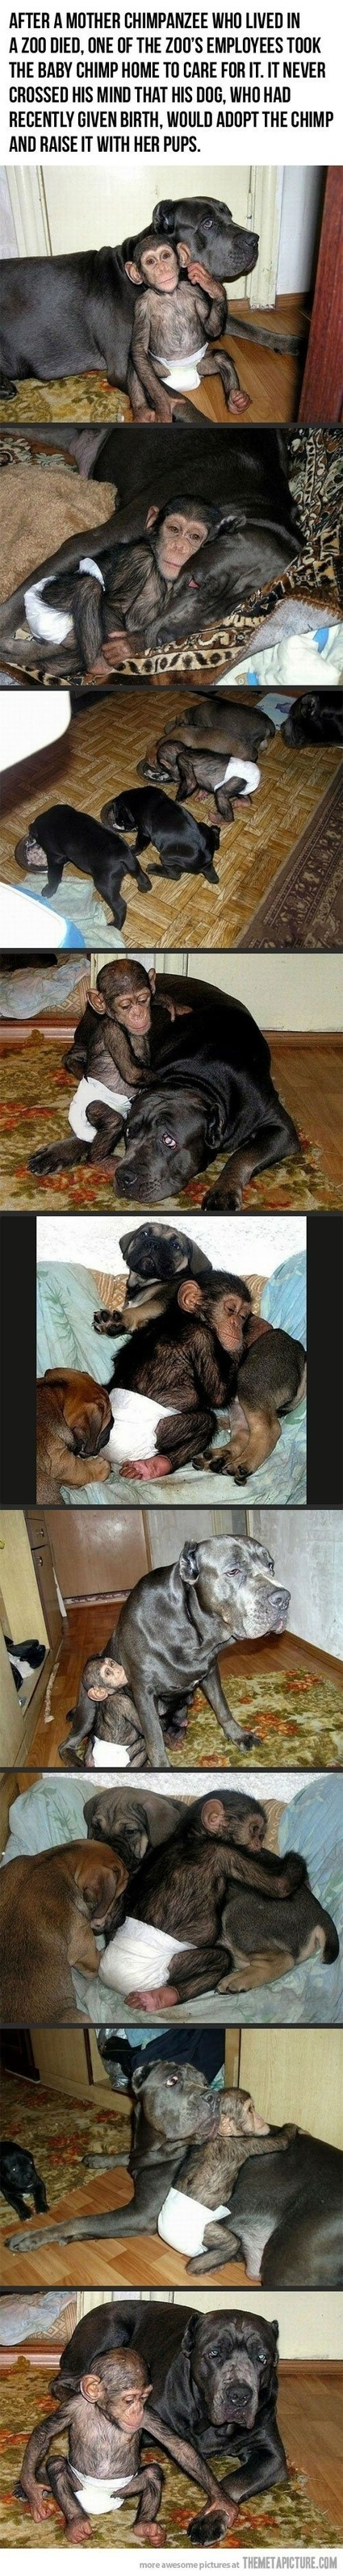 Dog becomes chimp's foster mom | This Gives Me Hope | Scoop.it